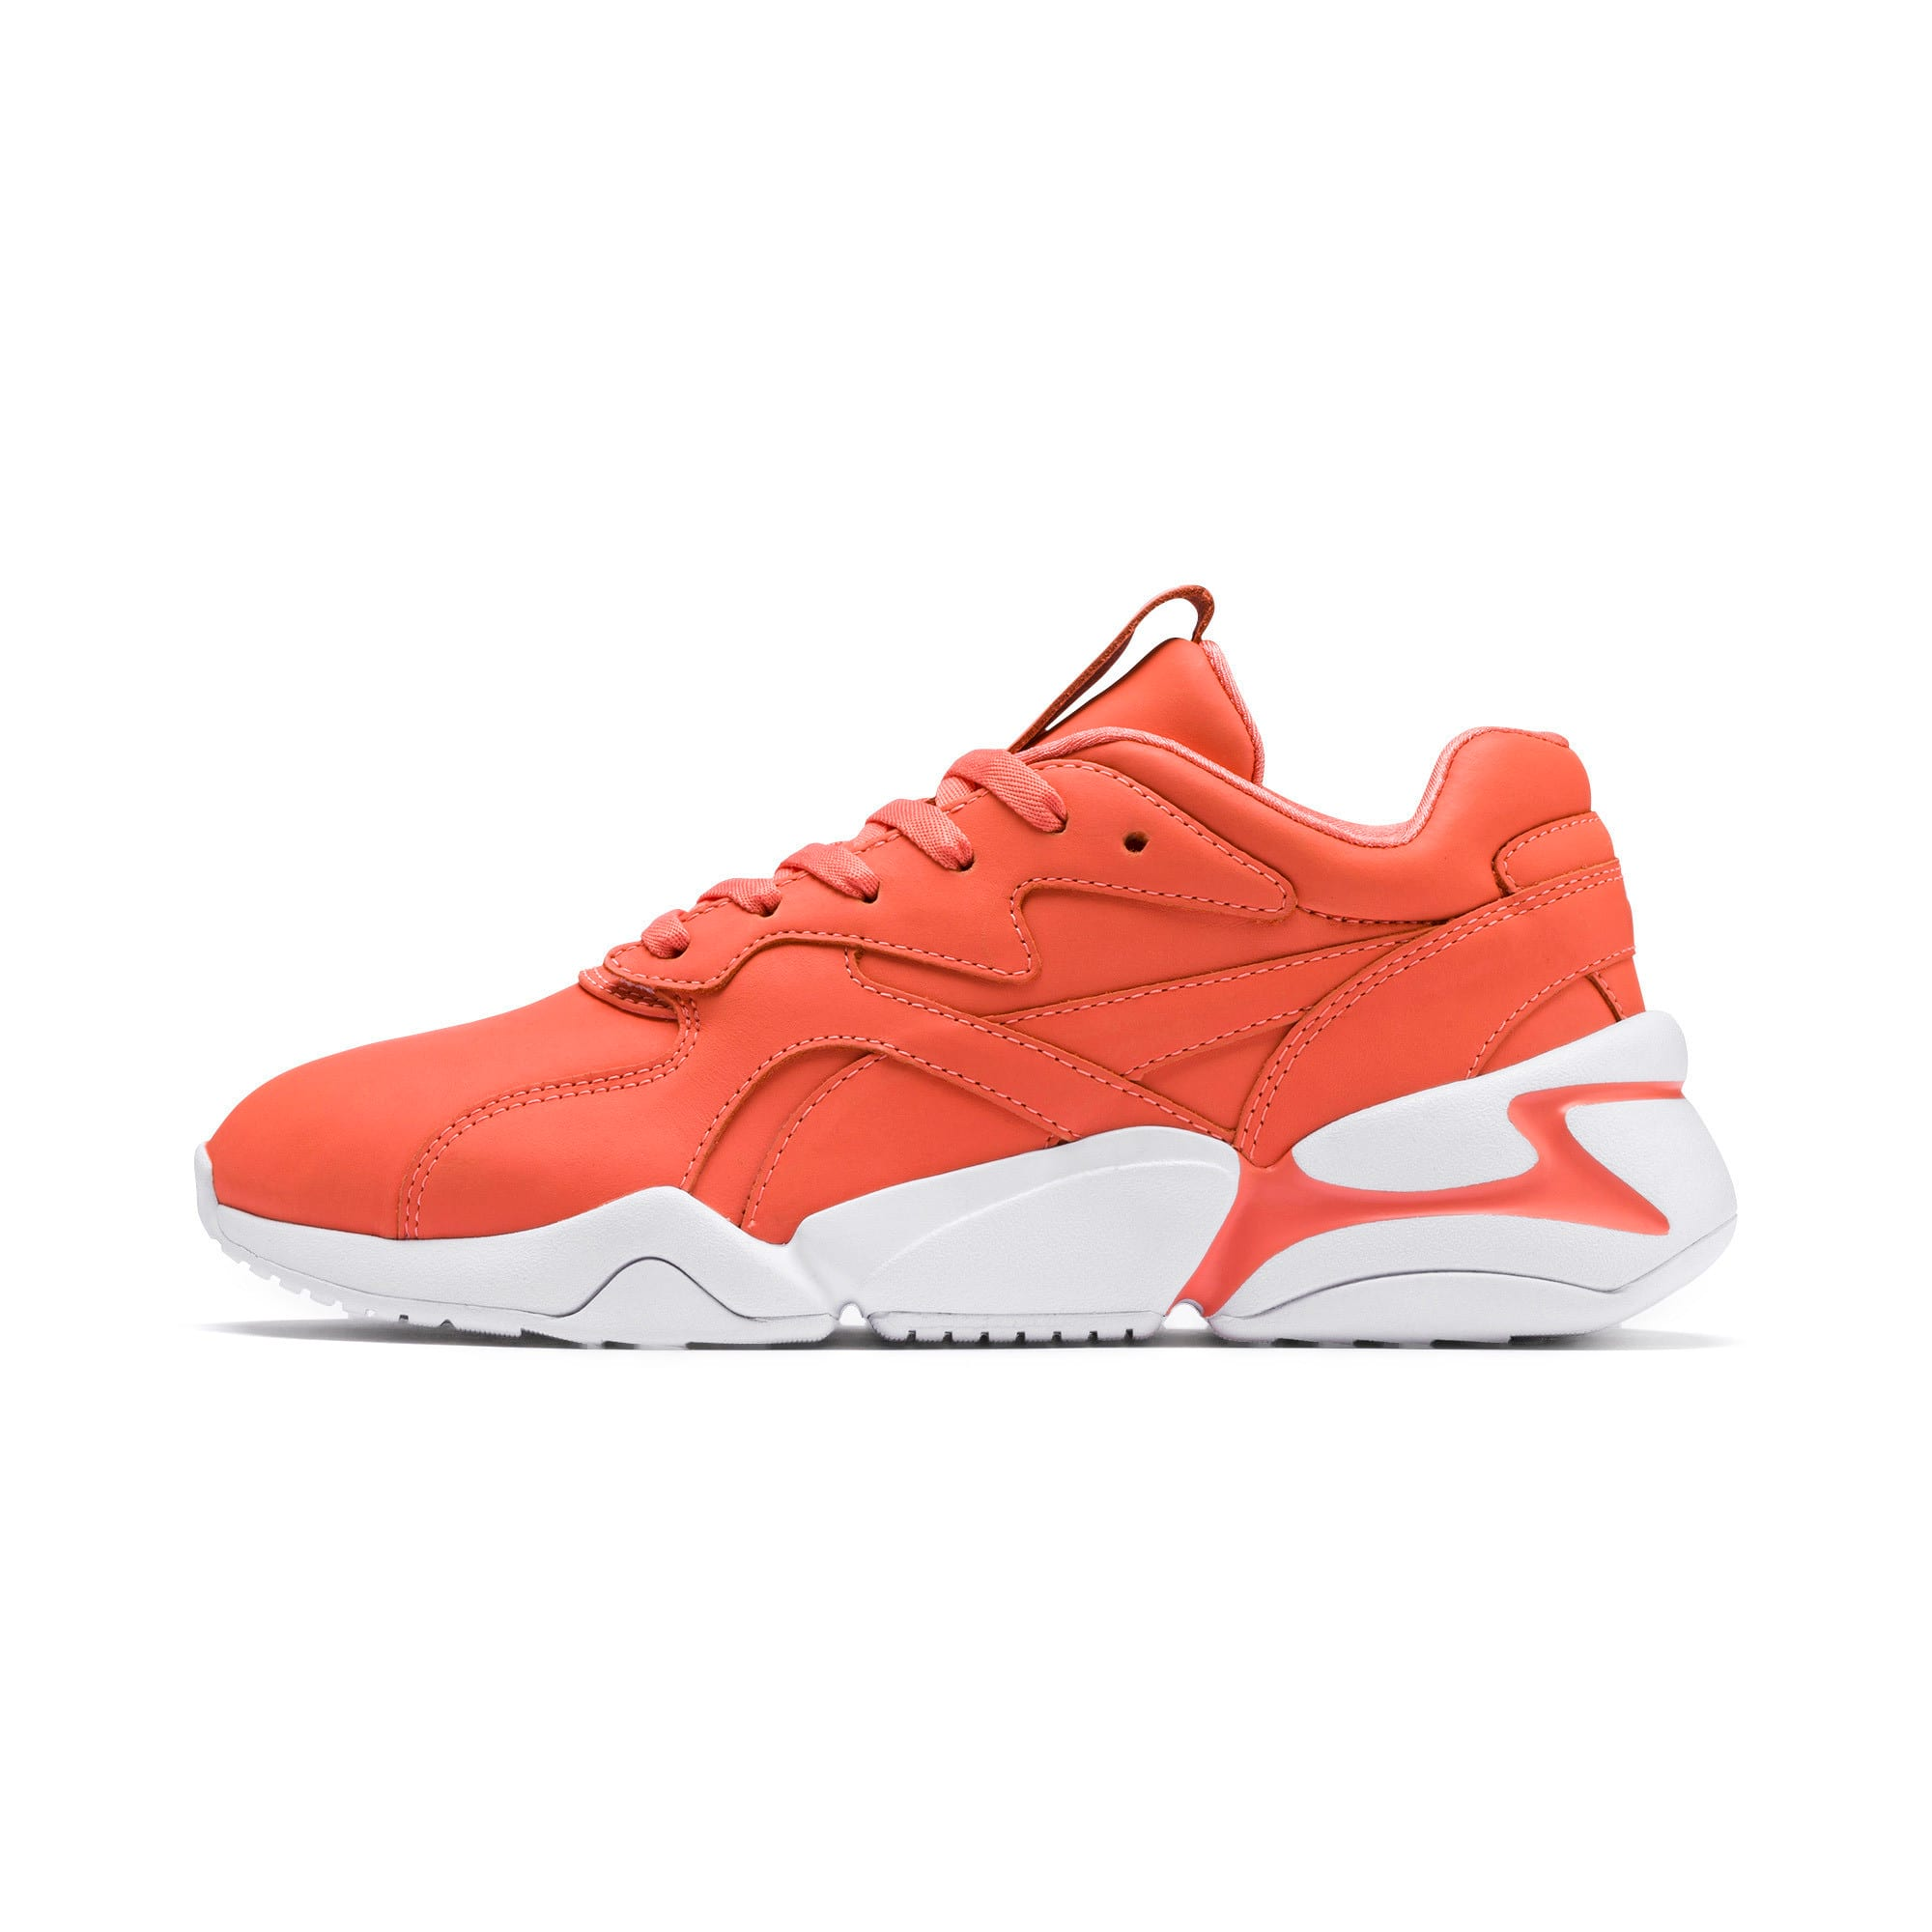 Thumbnail 1 of PUMA x PANTONE Nova Women's Trainers, Living Coral-Puma White, medium